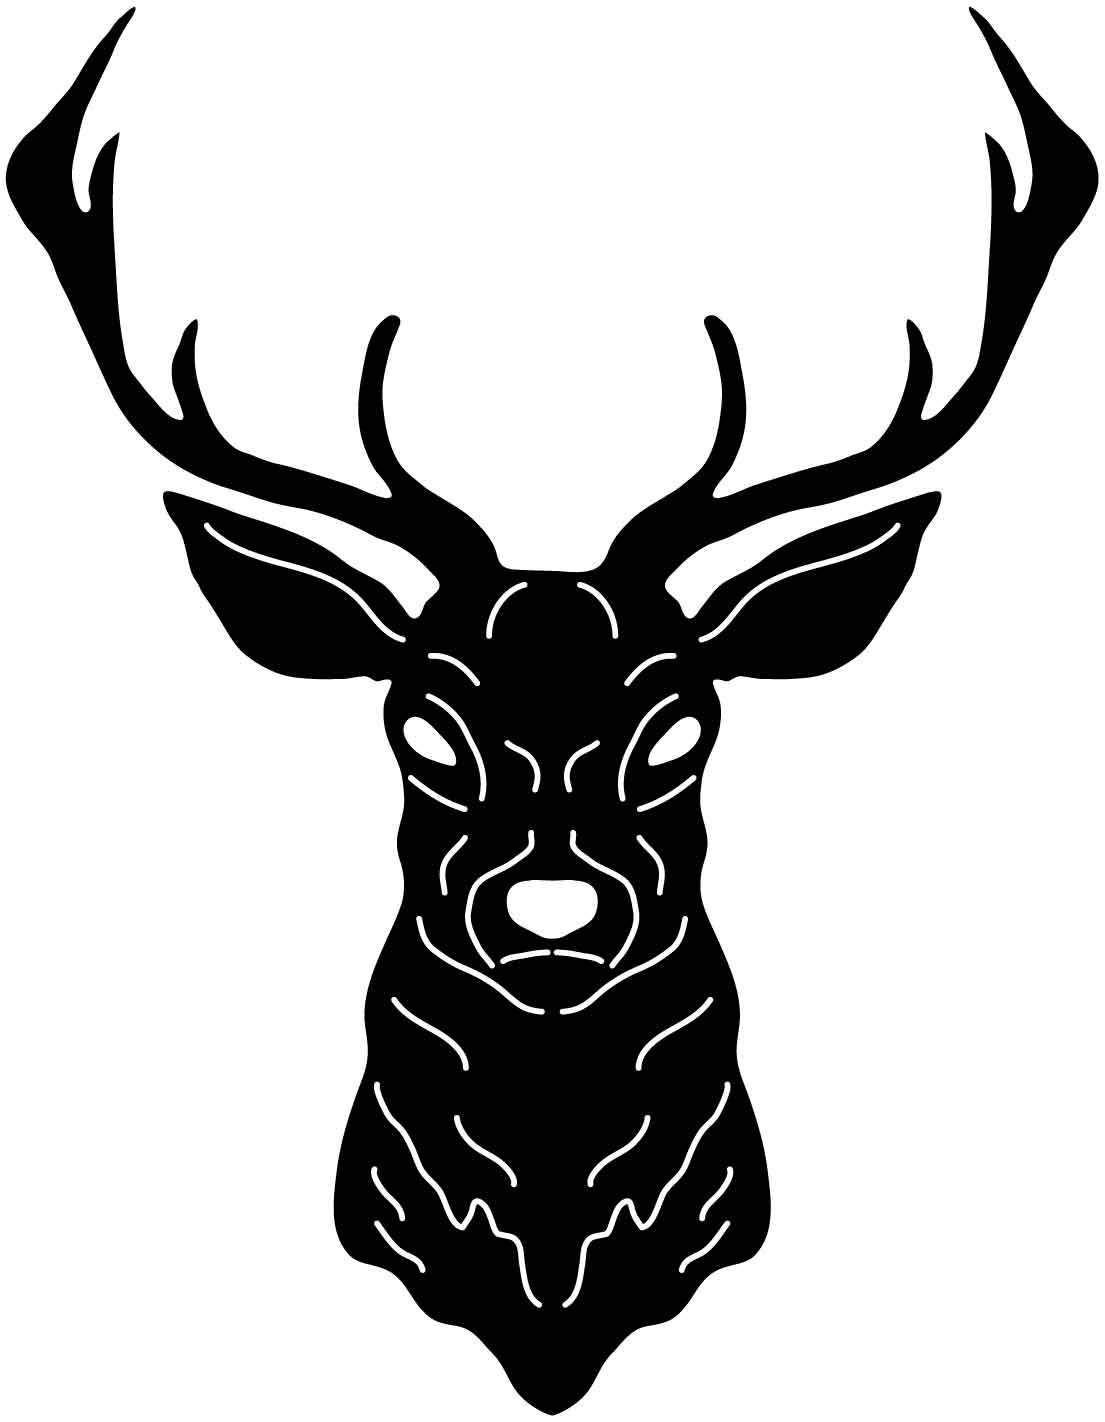 Black clipart for plazma table banner royalty free library Deer Head Free DXF file | Rustic signs | Plasma machine, Cnc wood ... banner royalty free library